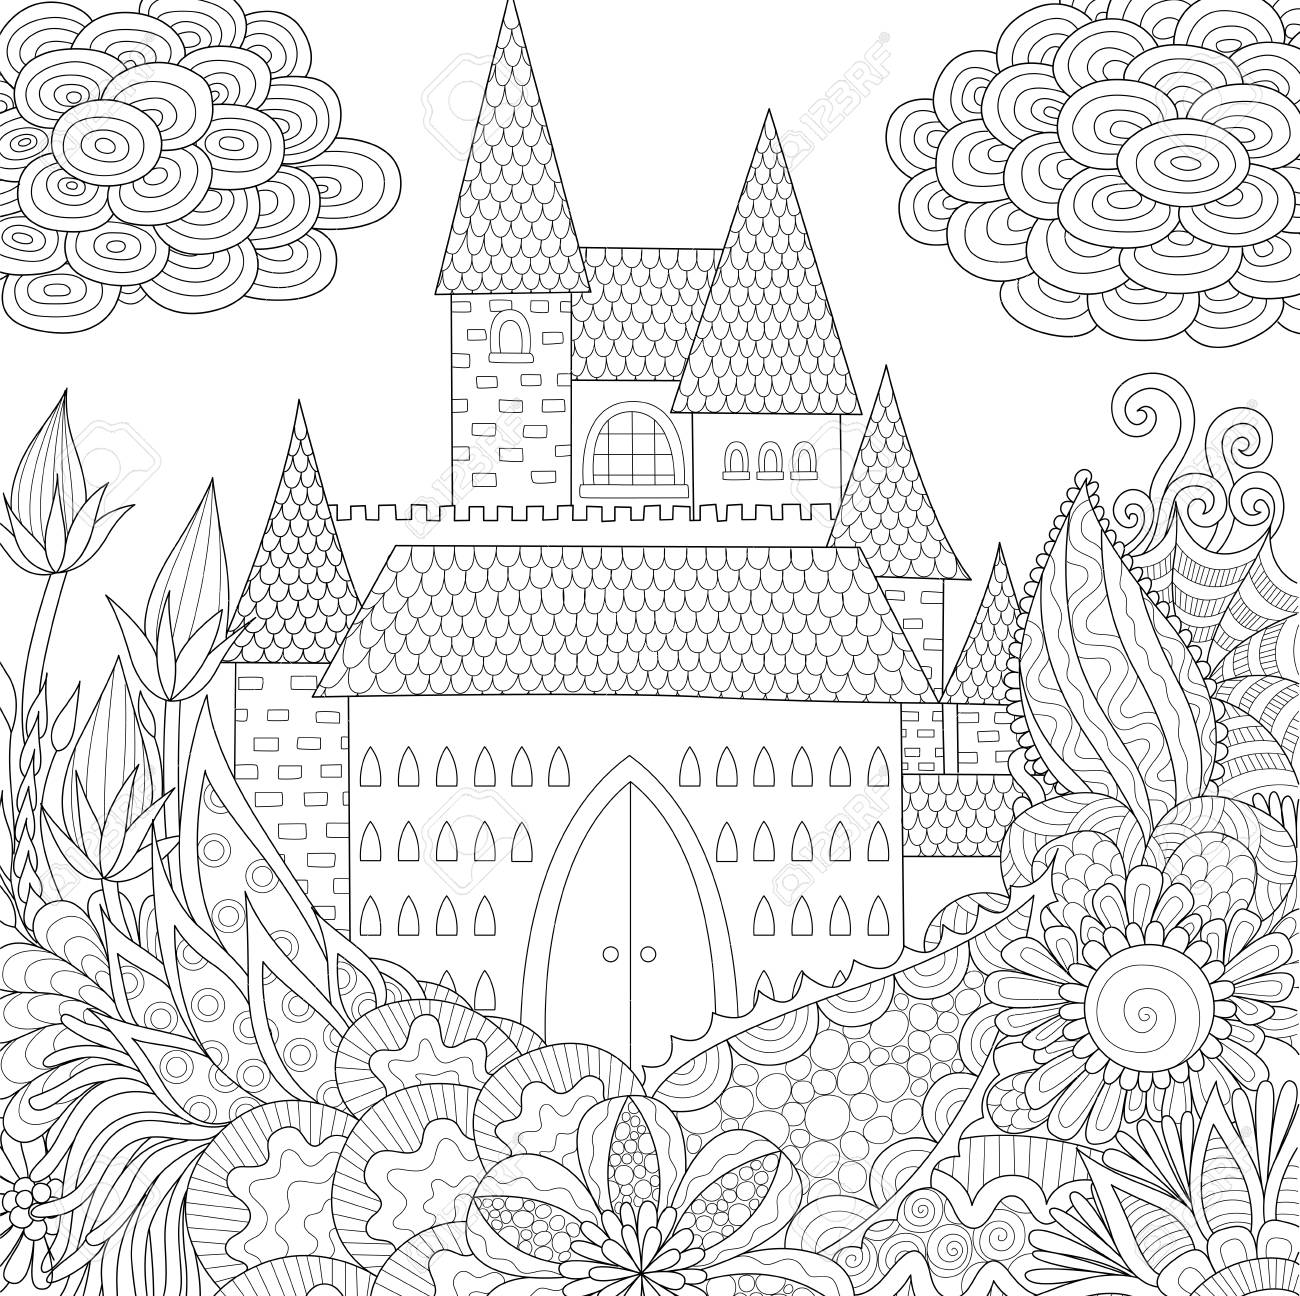 Line art design of jungle and castle coloring Book for adults...